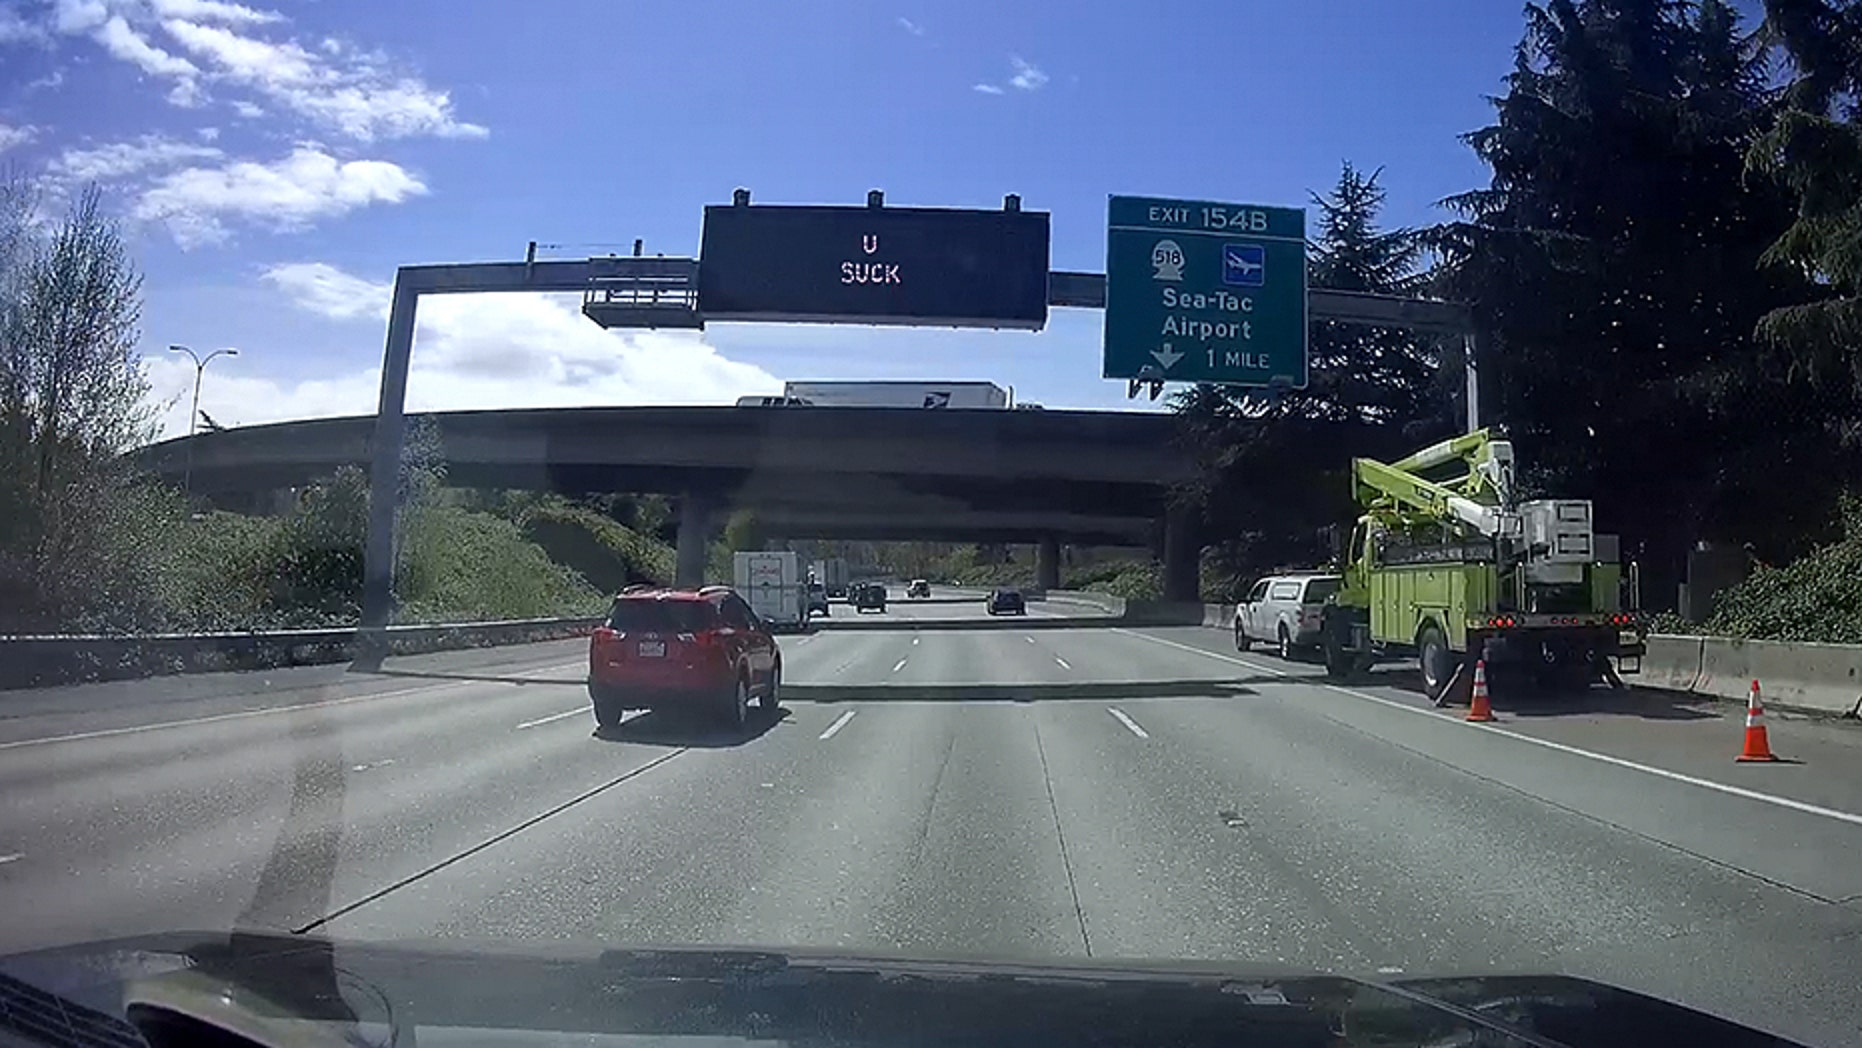 A sign reading 'U SUCK' was spotted along Interstate Highway 4 in Washington State.